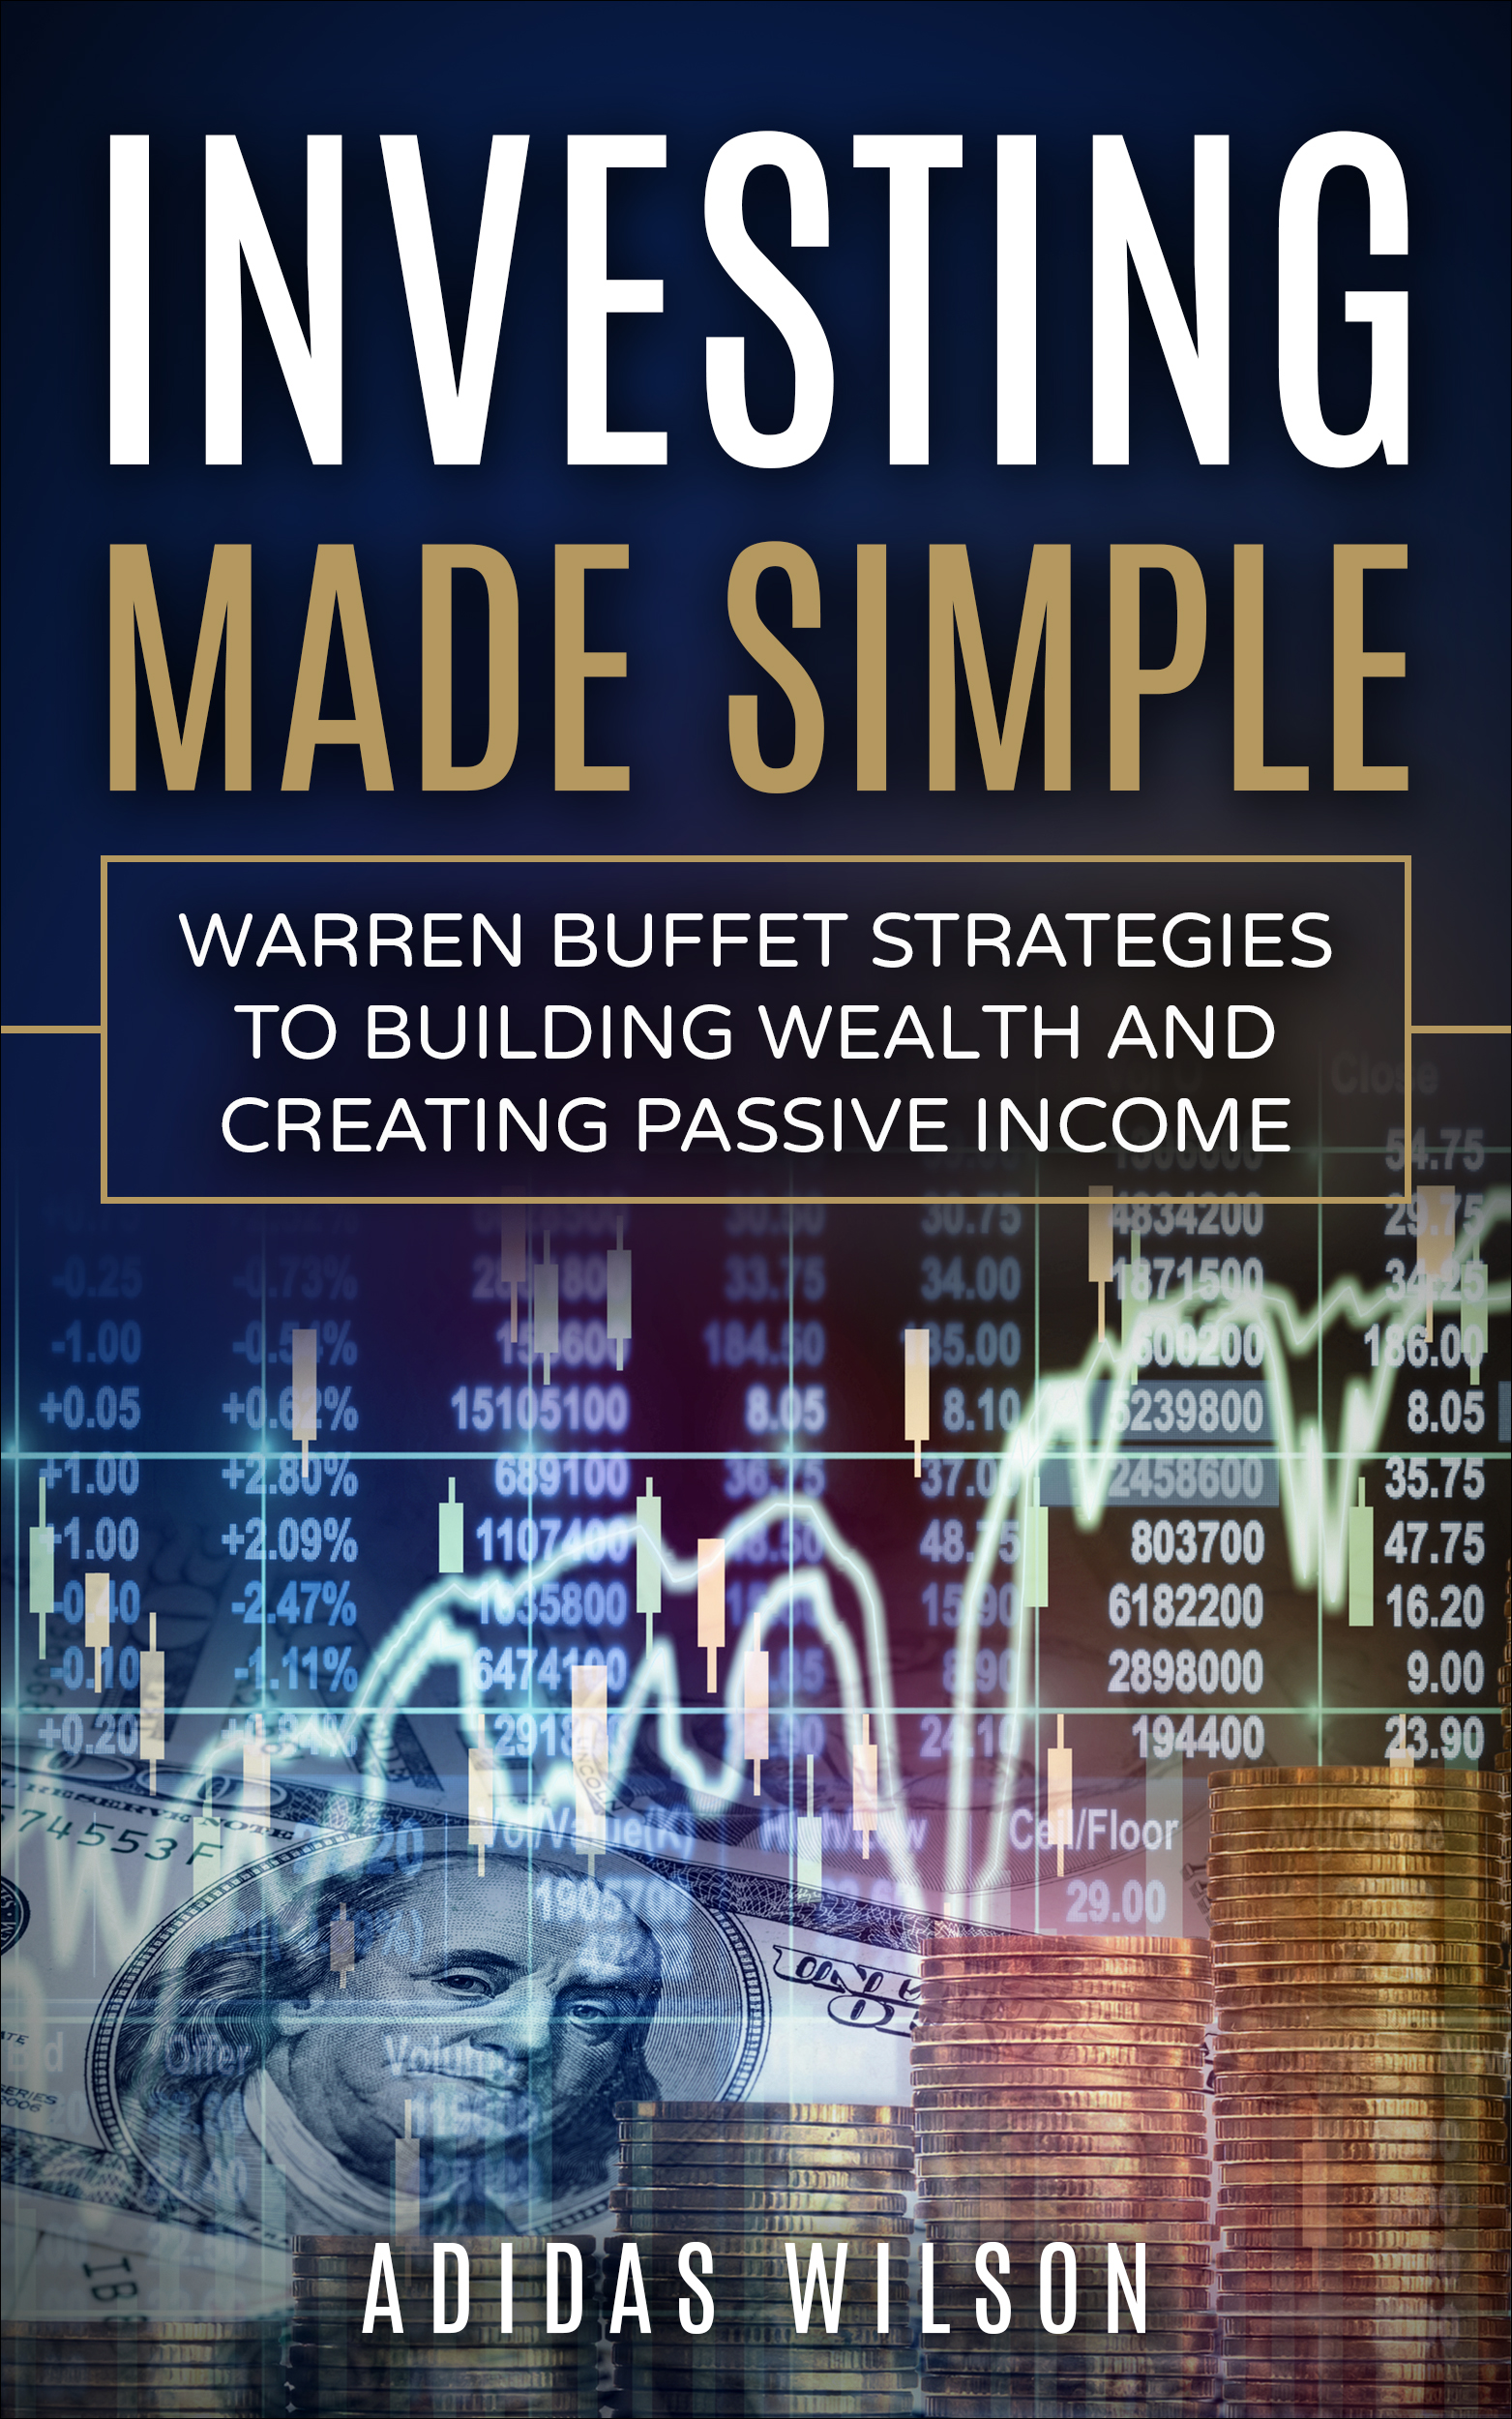 Investing made simple : warren buffet strategies to building wealth and creating passive income